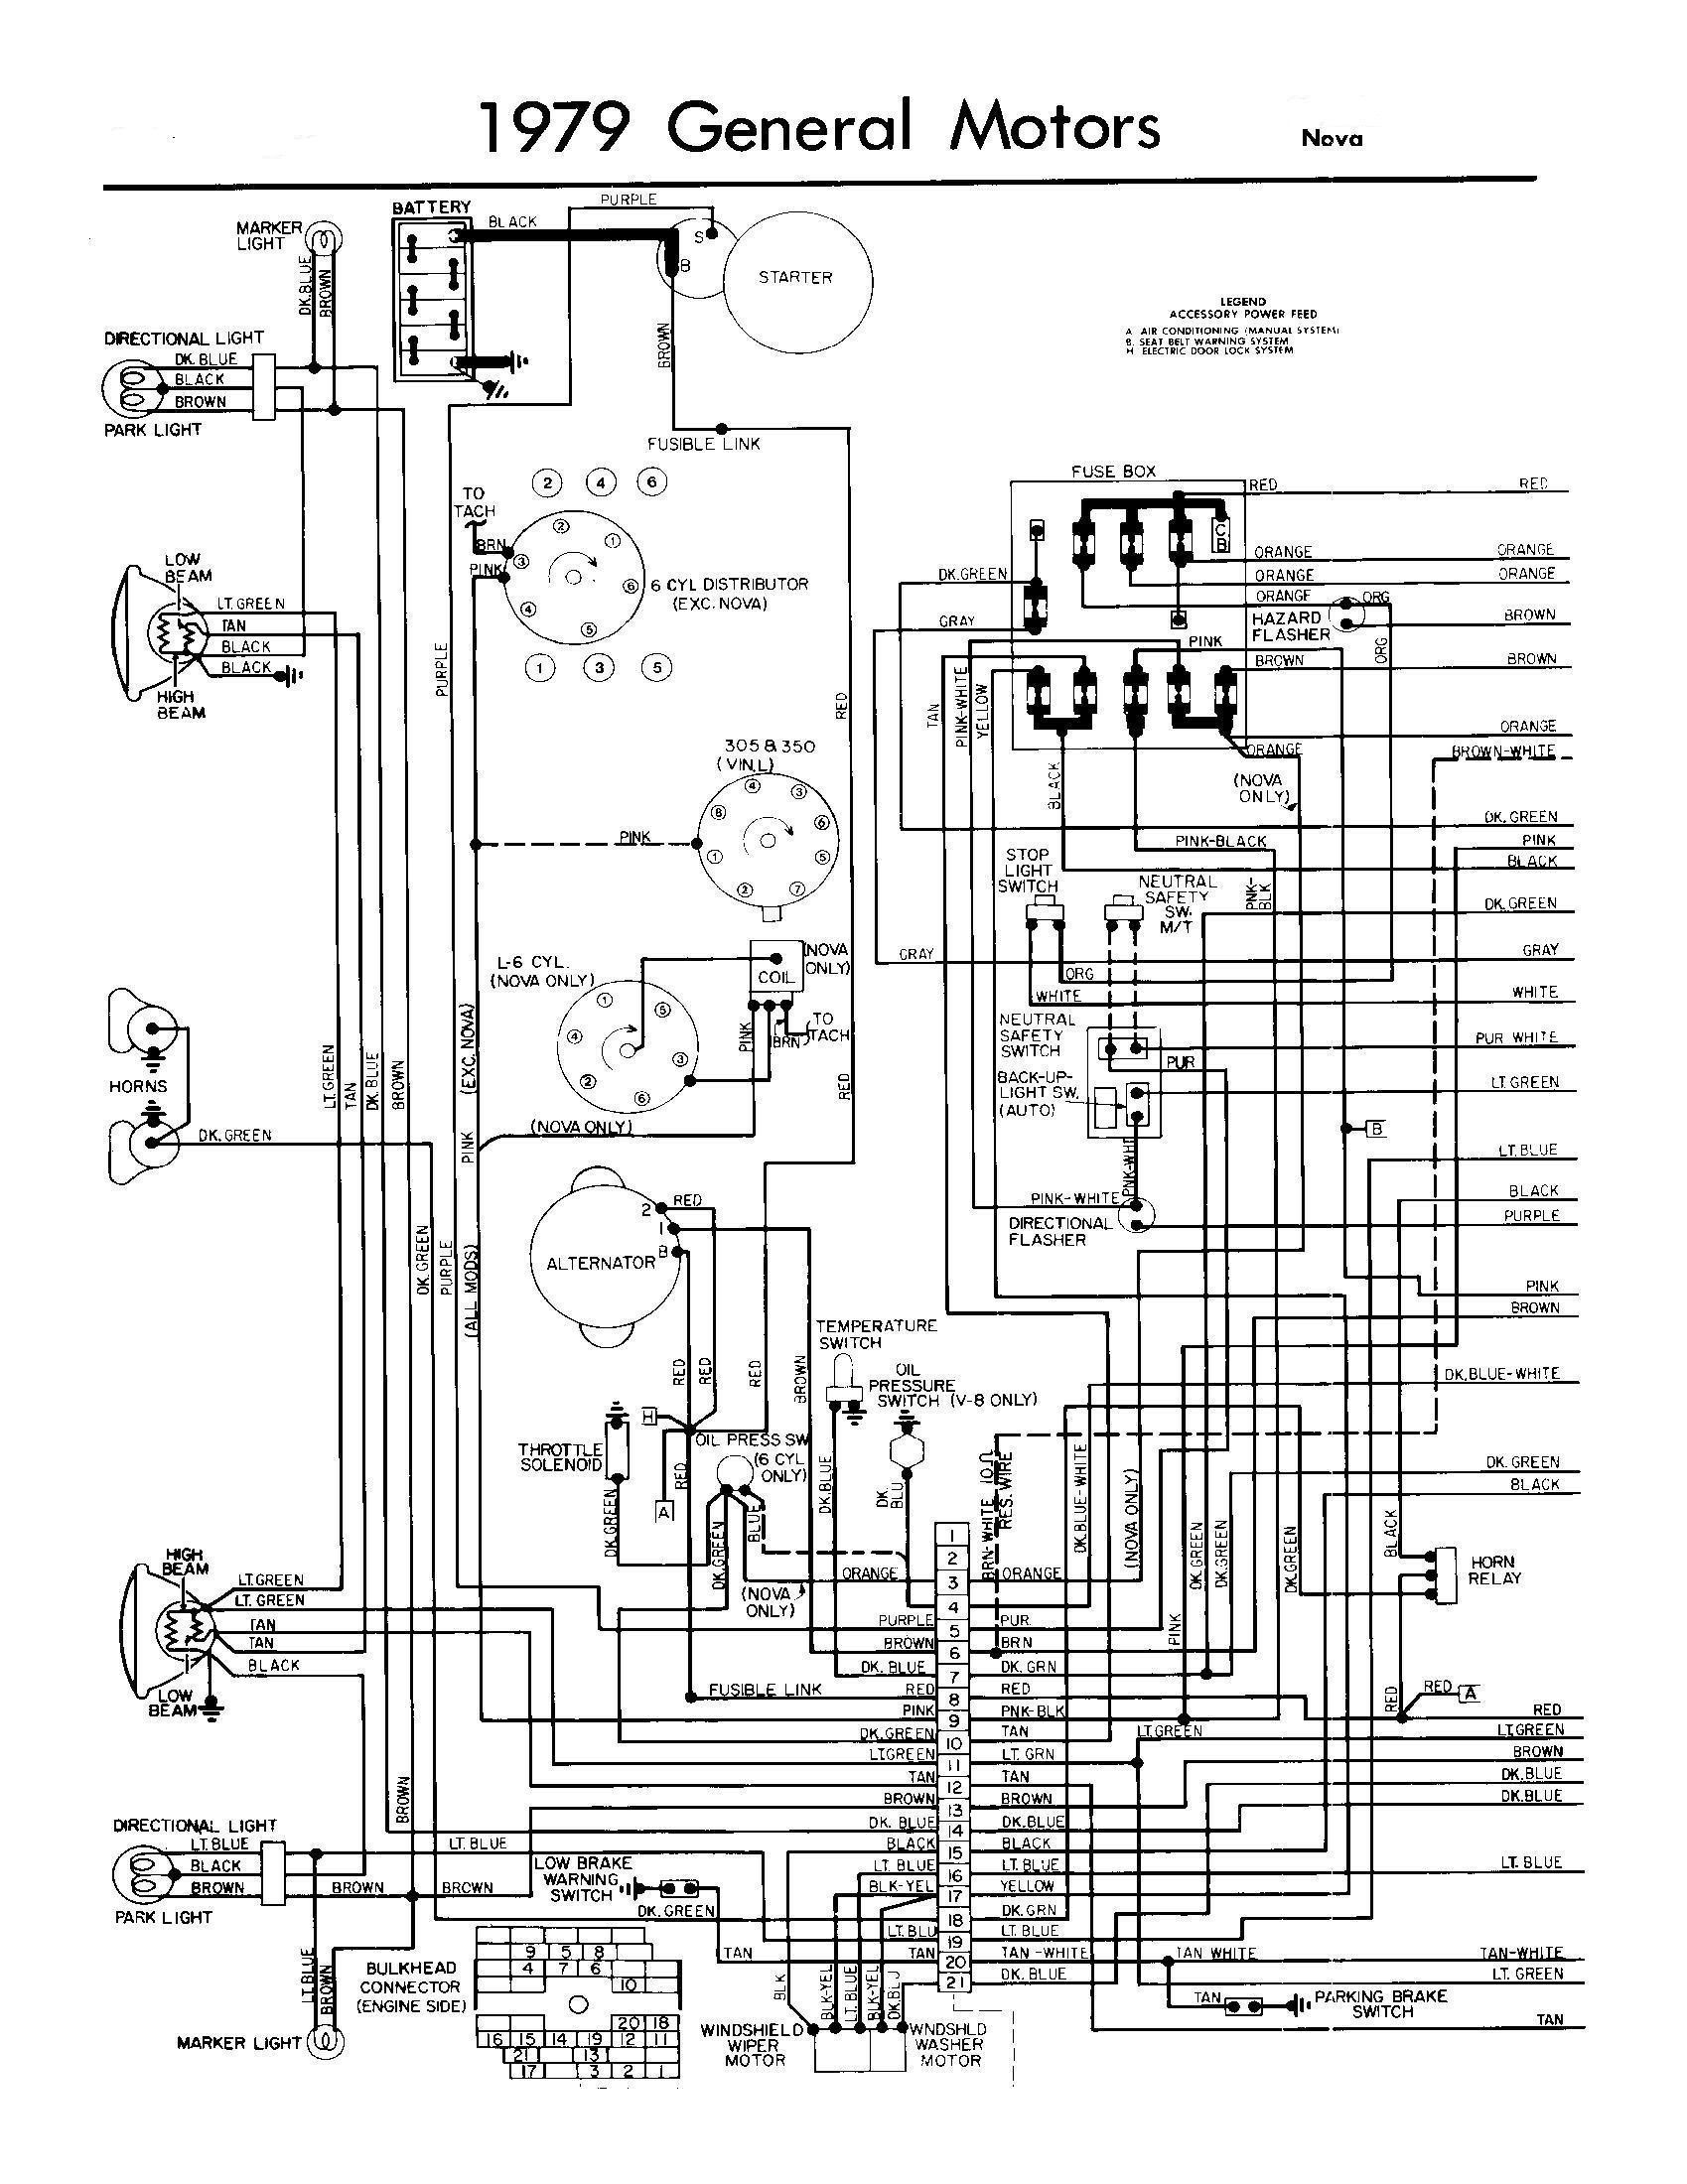 1970 Chevelle Dash Wiring Diagram from i0.wp.com